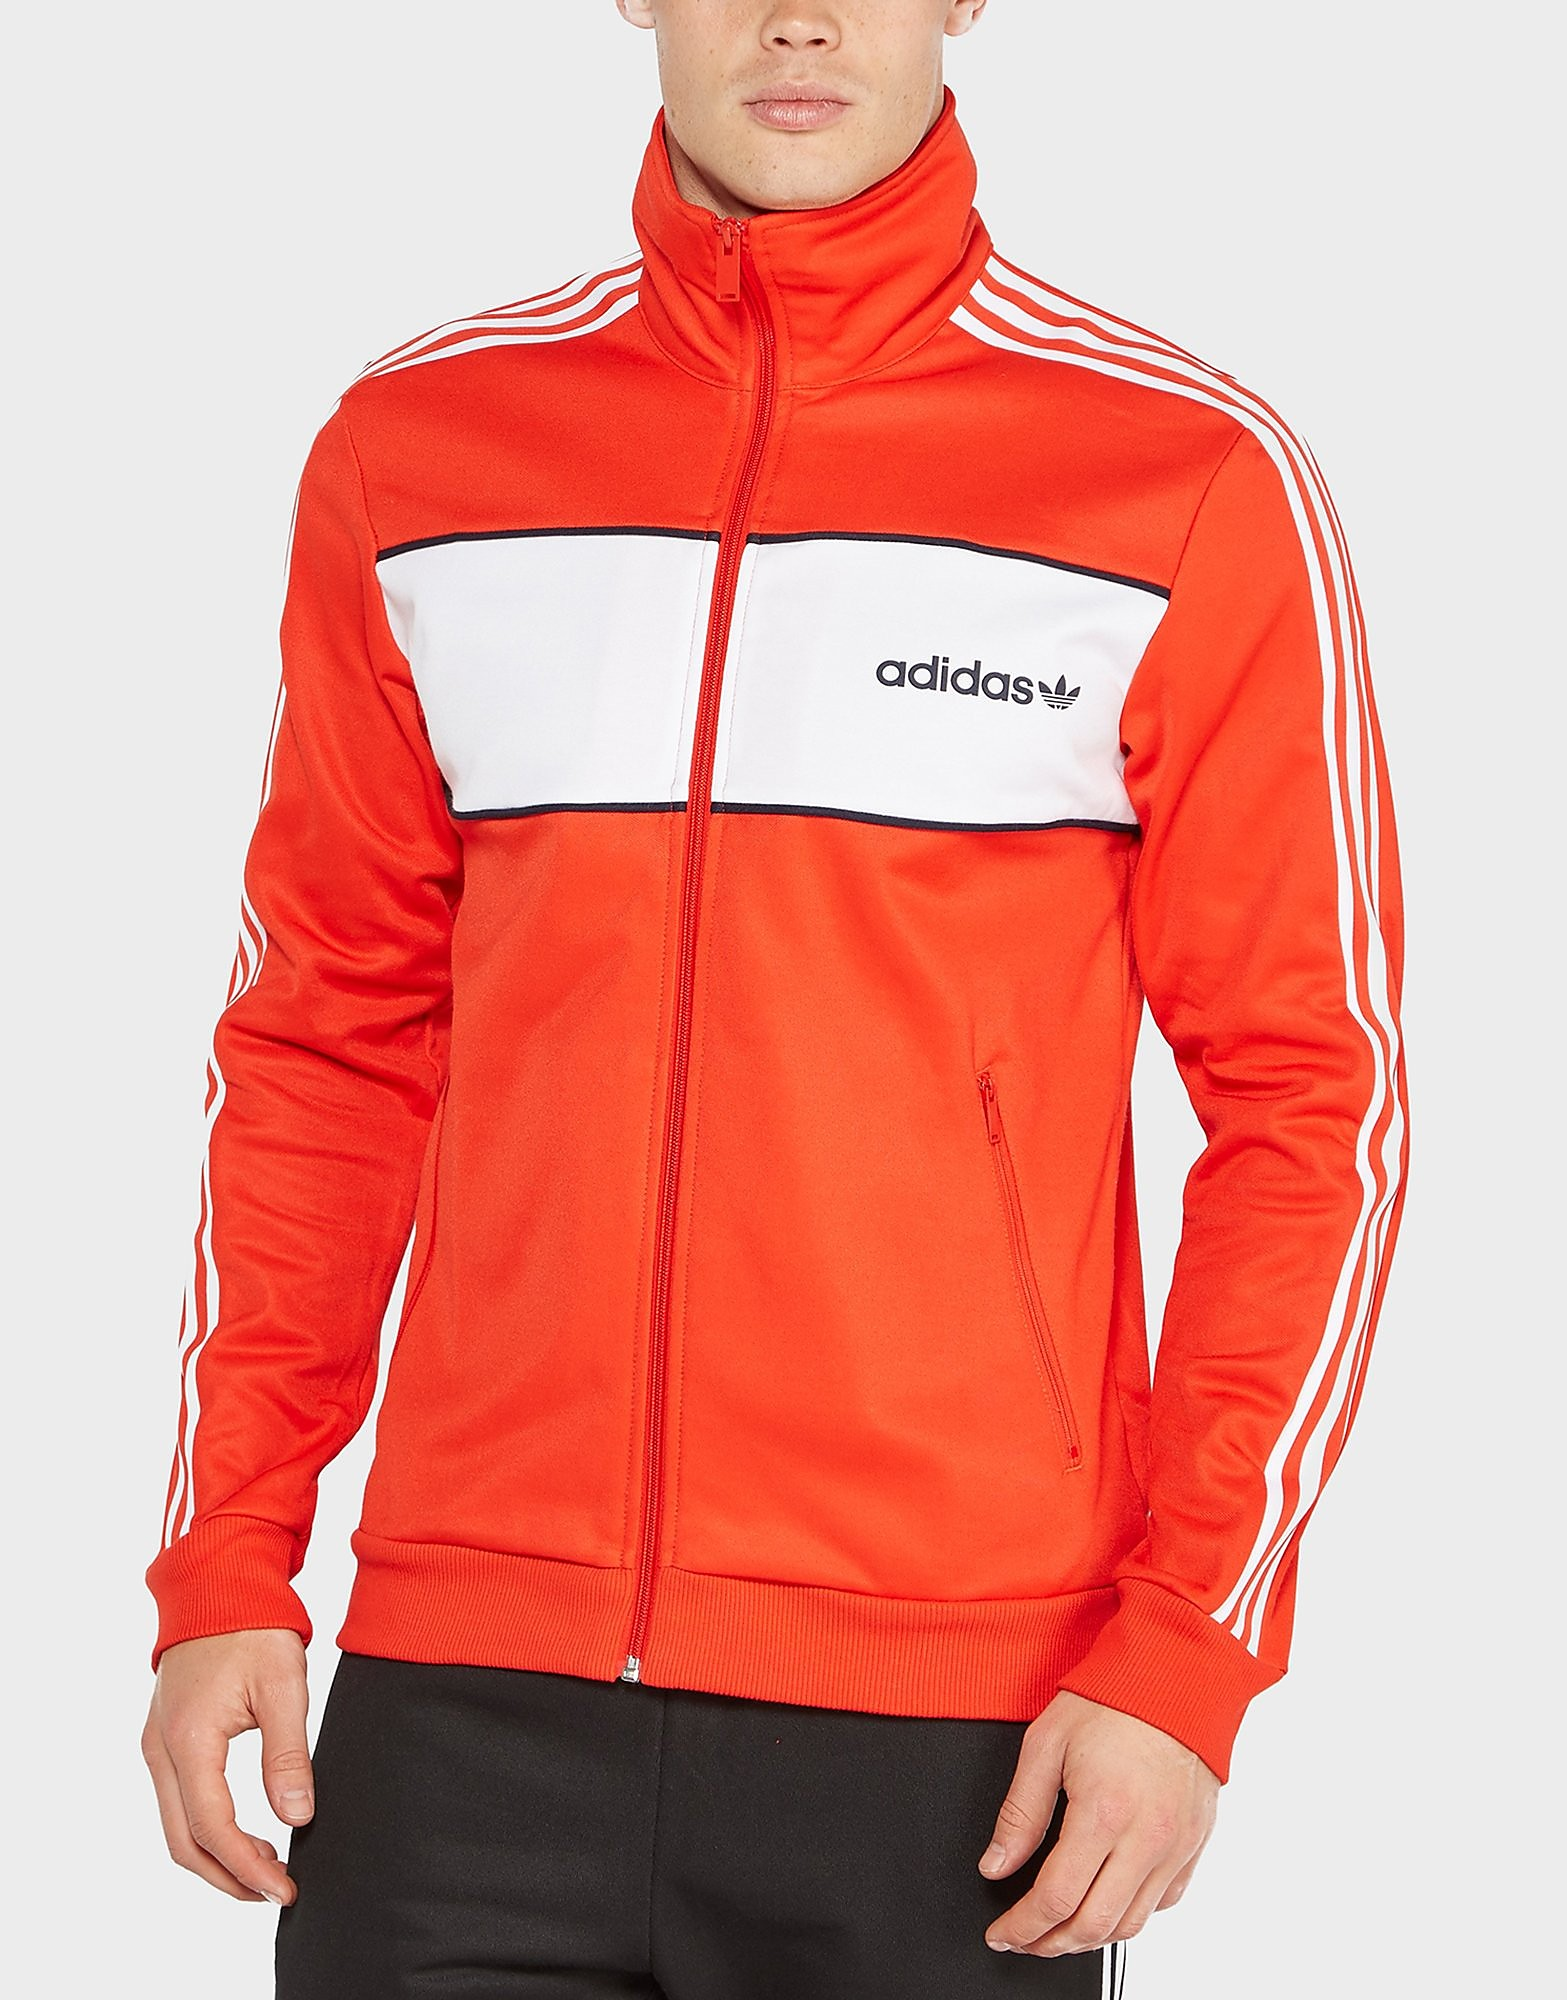 adidas Originals London Block Track Top